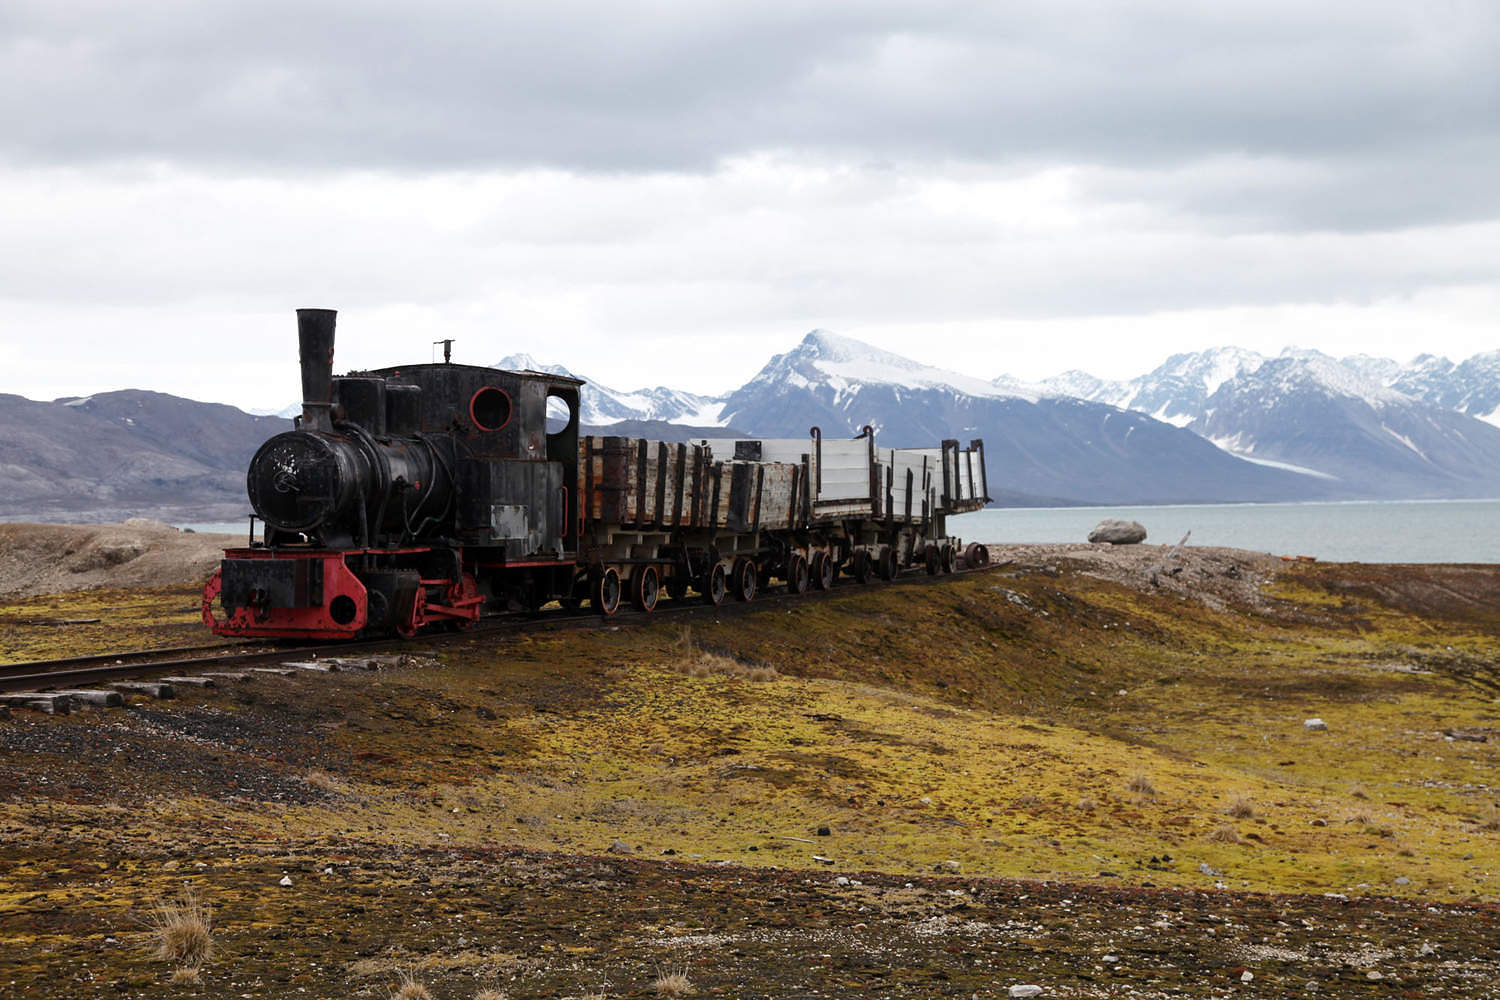 Coal trucks and locomotive preserved as a monument at Ny Alesund, Svalbard, Norway, Scandinavia, Europe